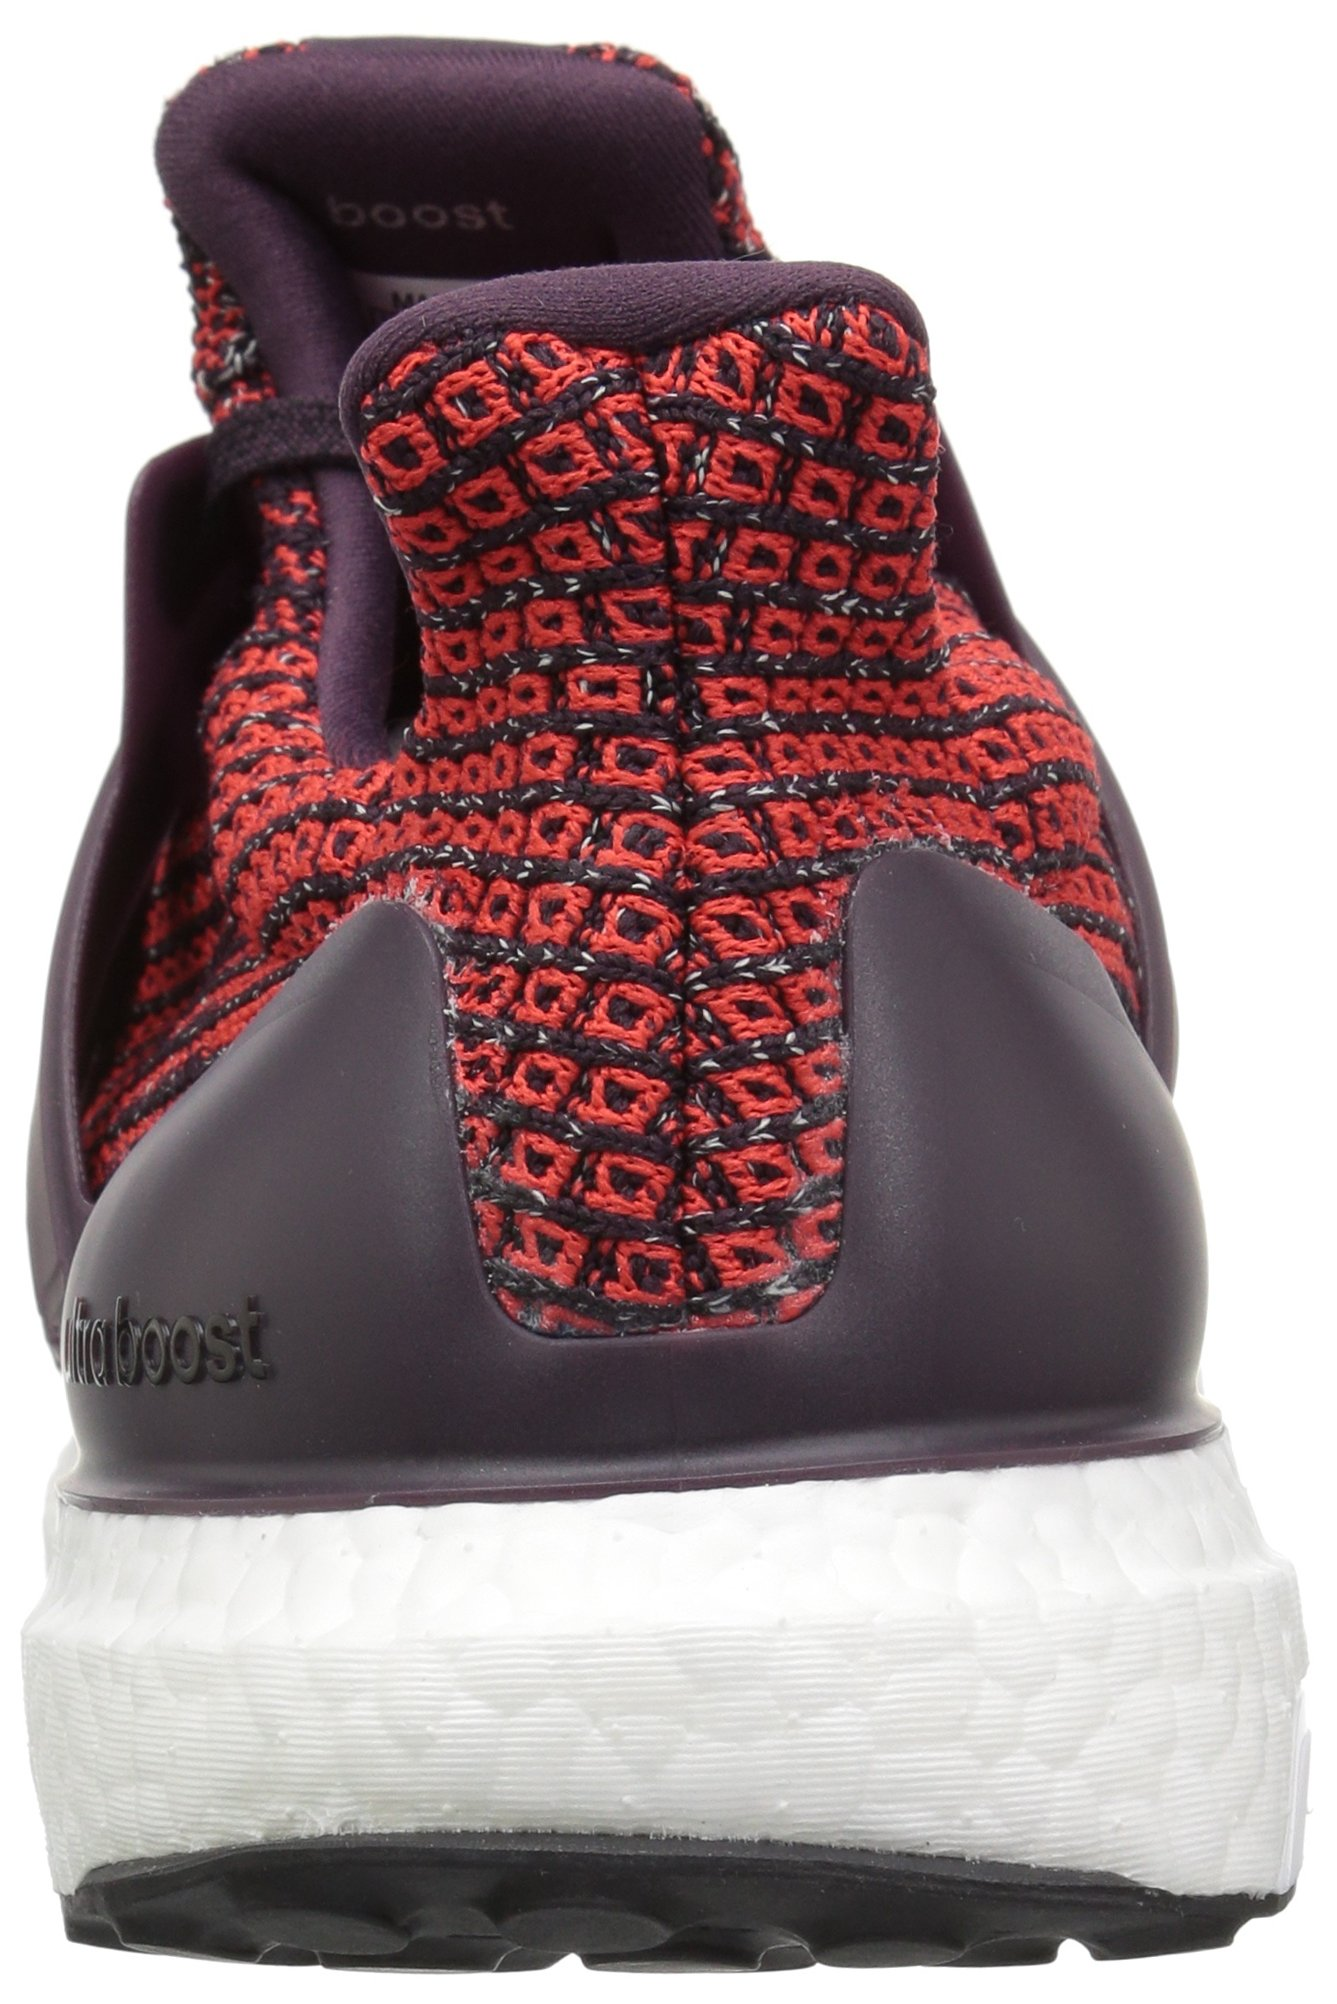 adidas Men's Ultraboost Road Running Shoe, Noble Red/Noble Red/Core Black, 5 M US by adidas (Image #2)